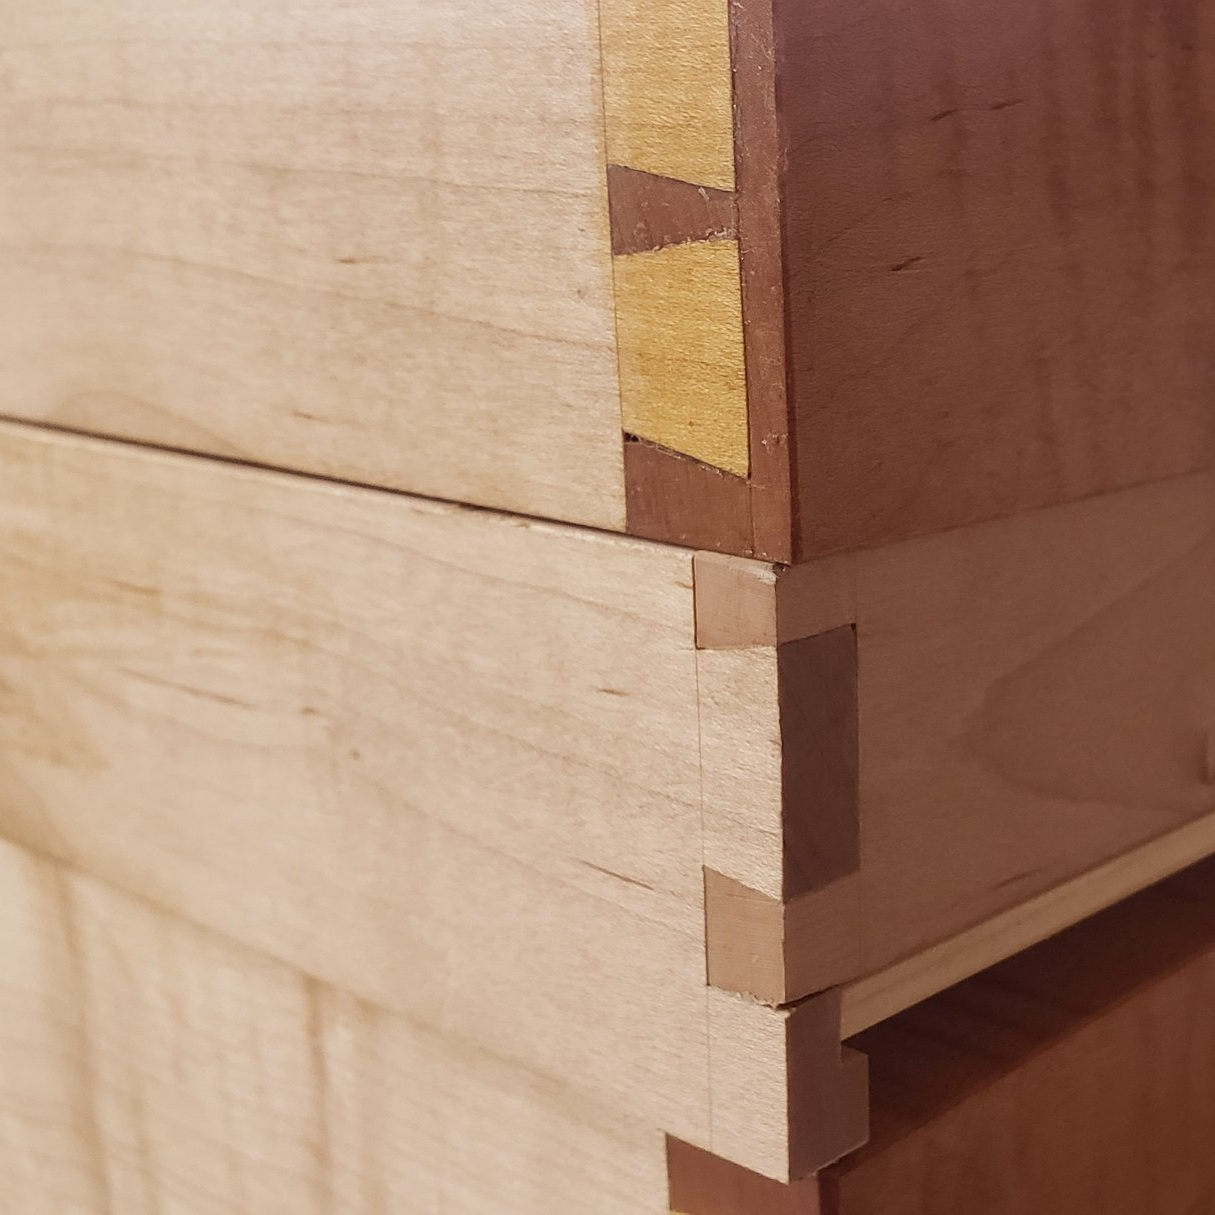 Learn+Woodworking+Joinery+-+How+To+Make+Dovetails